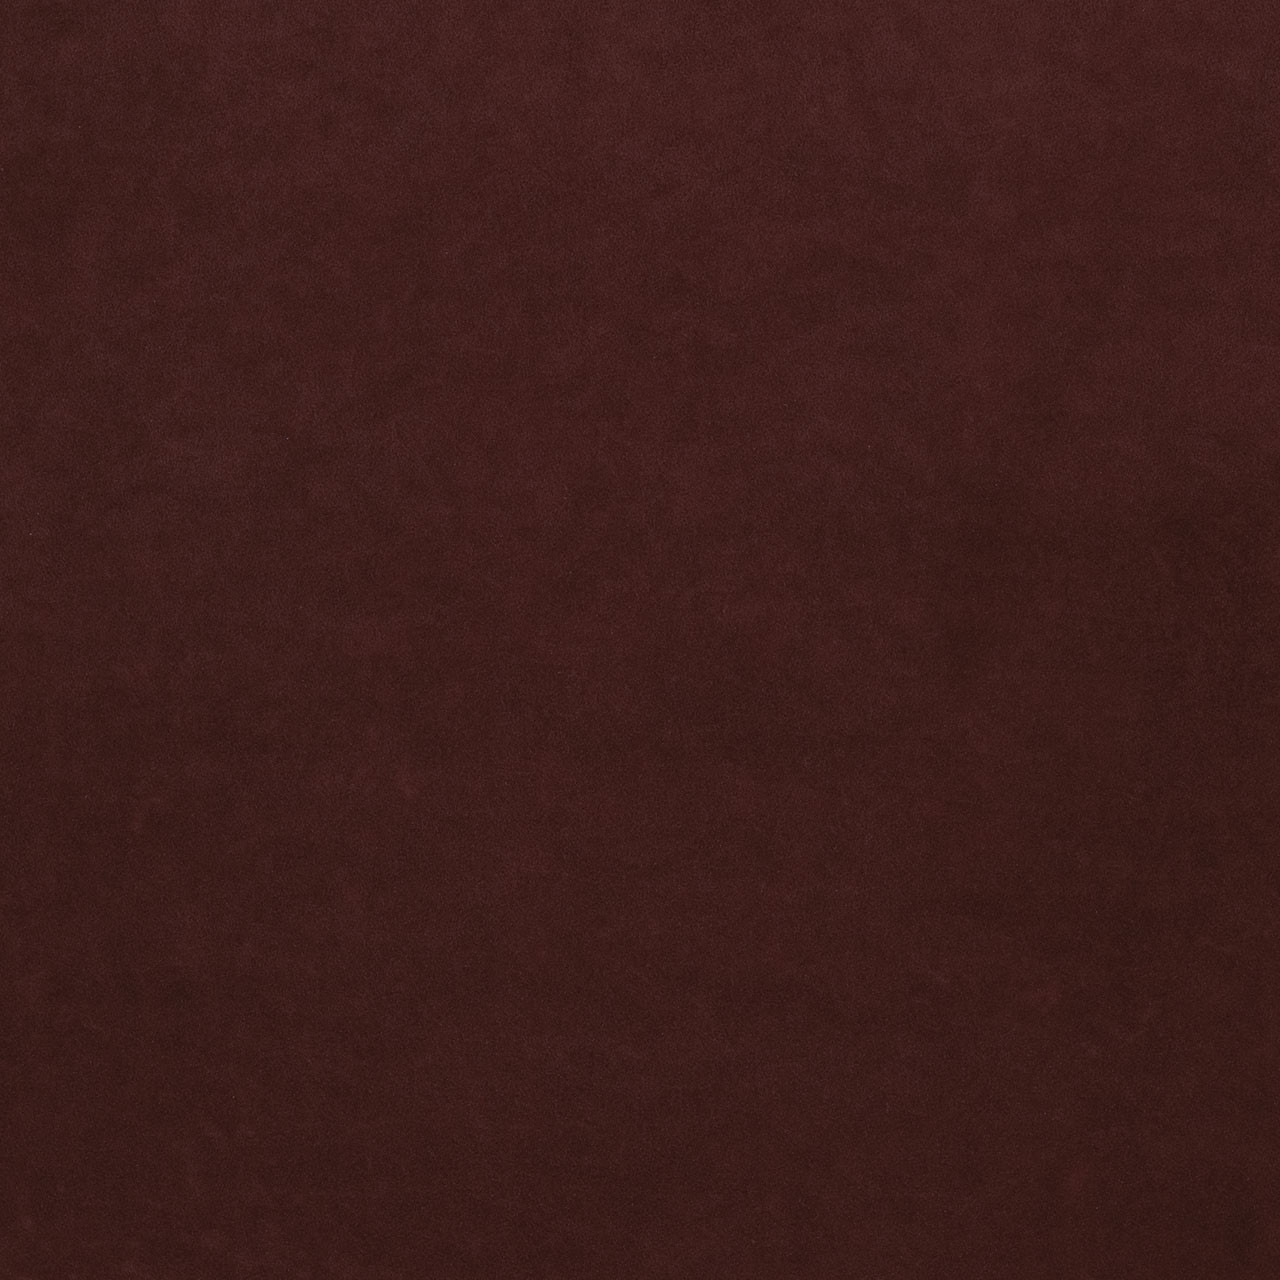 Suede Burgundy Upholstery Fabric Swatch - Crypton Store d4efc2529af44